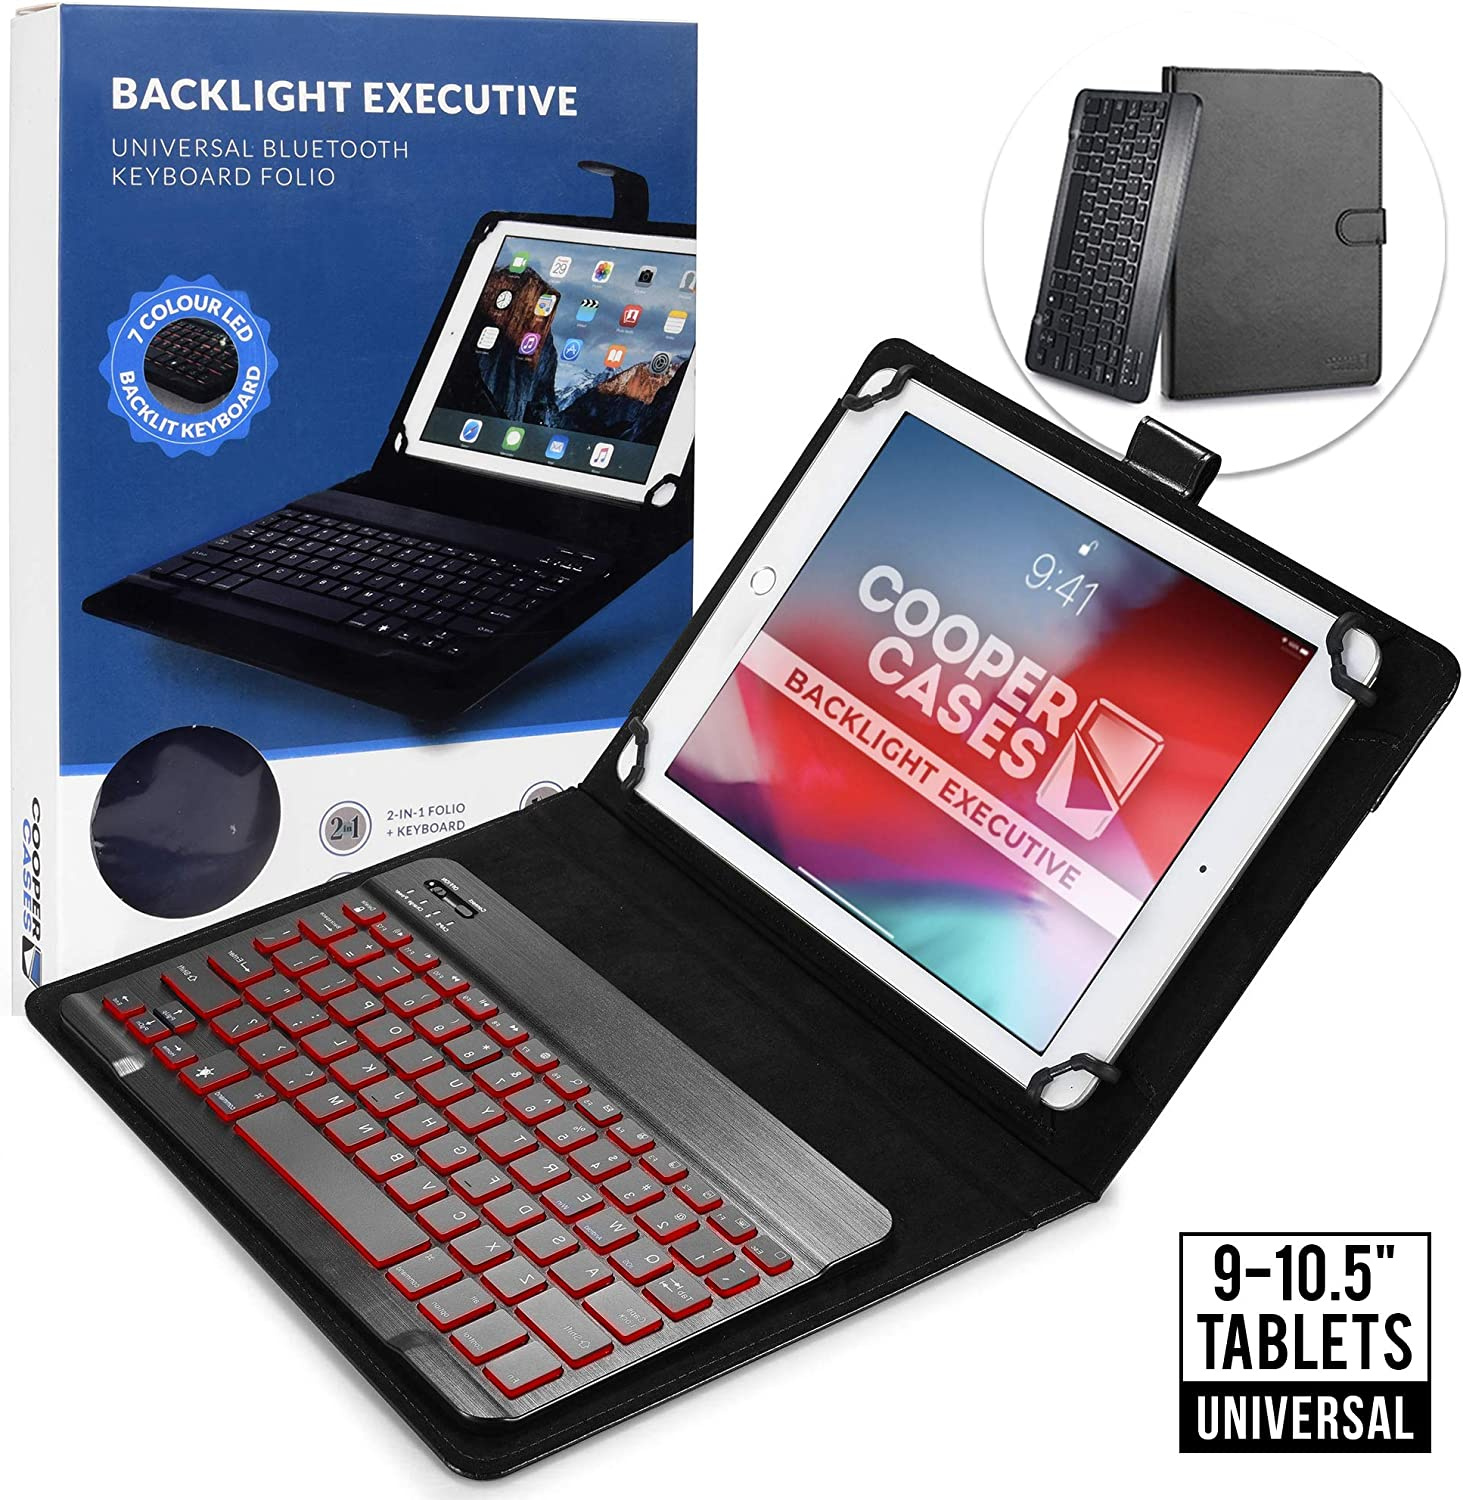 Cooper Backlight Executive Keyboard Case for 9-10.5 inch Tablets | Universal Fit | 2-in-1 Bluetooth Keyboard & Leather Folio, 7 Color Backlit (Black)